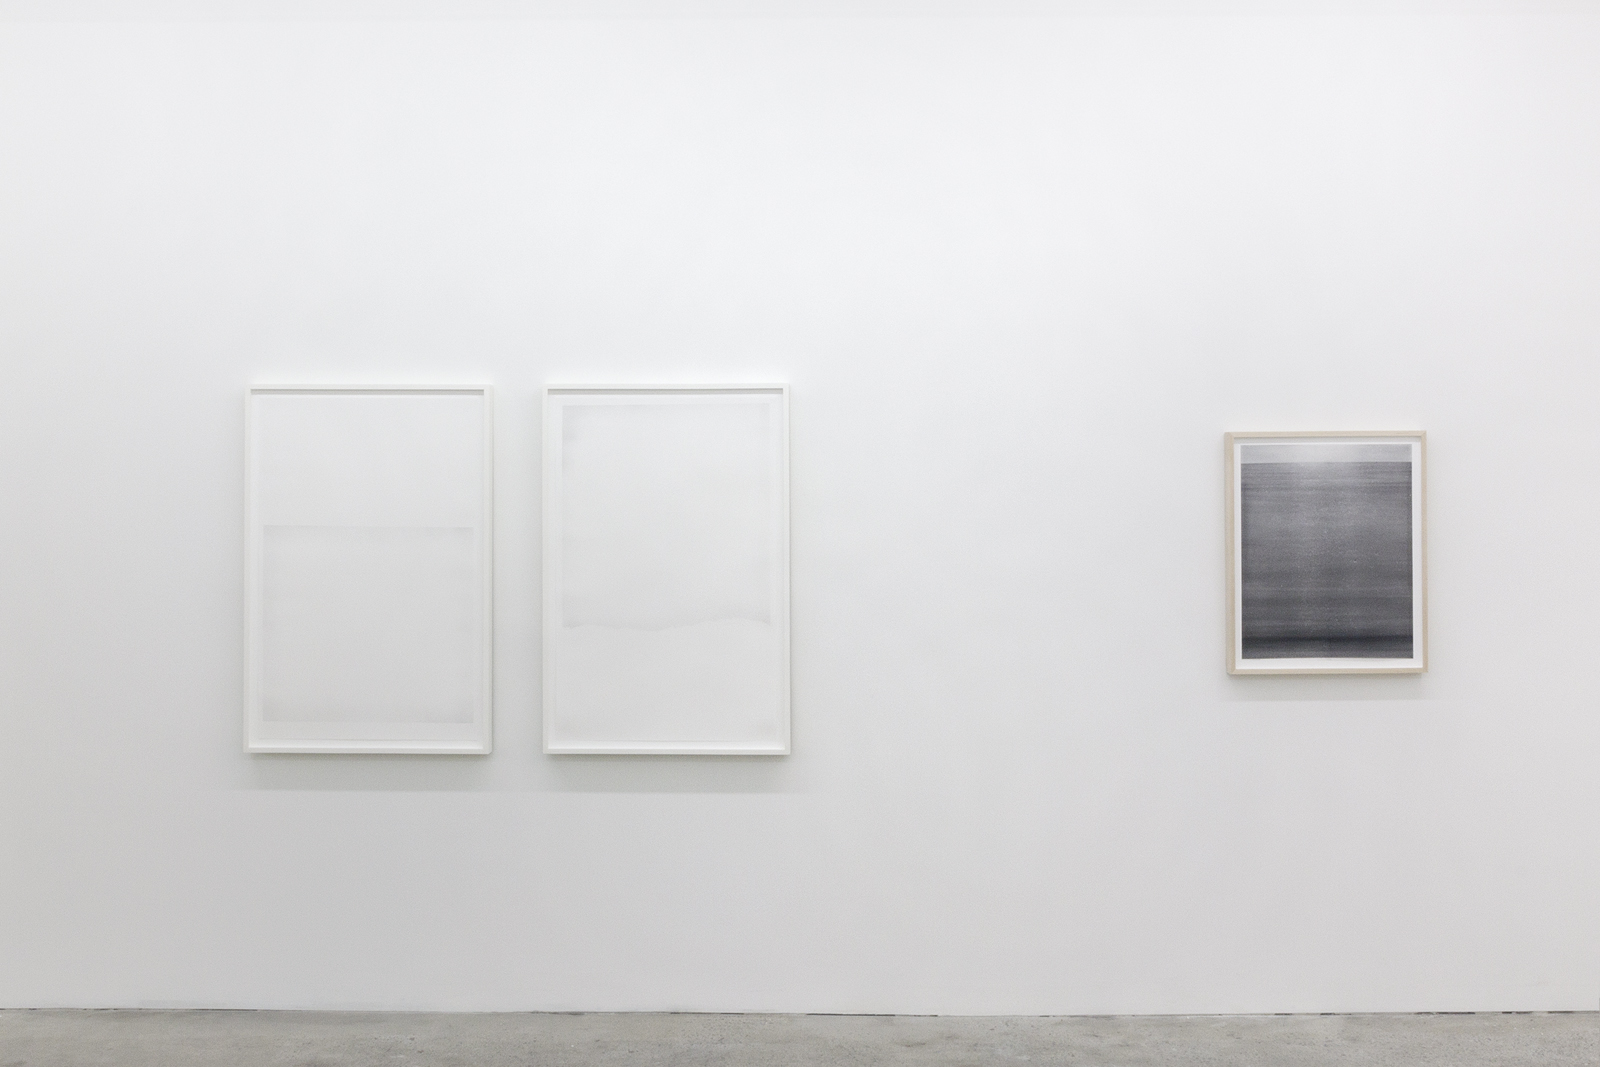 Installation View, Impermanent Horizon, Galerie Nicolas Robert